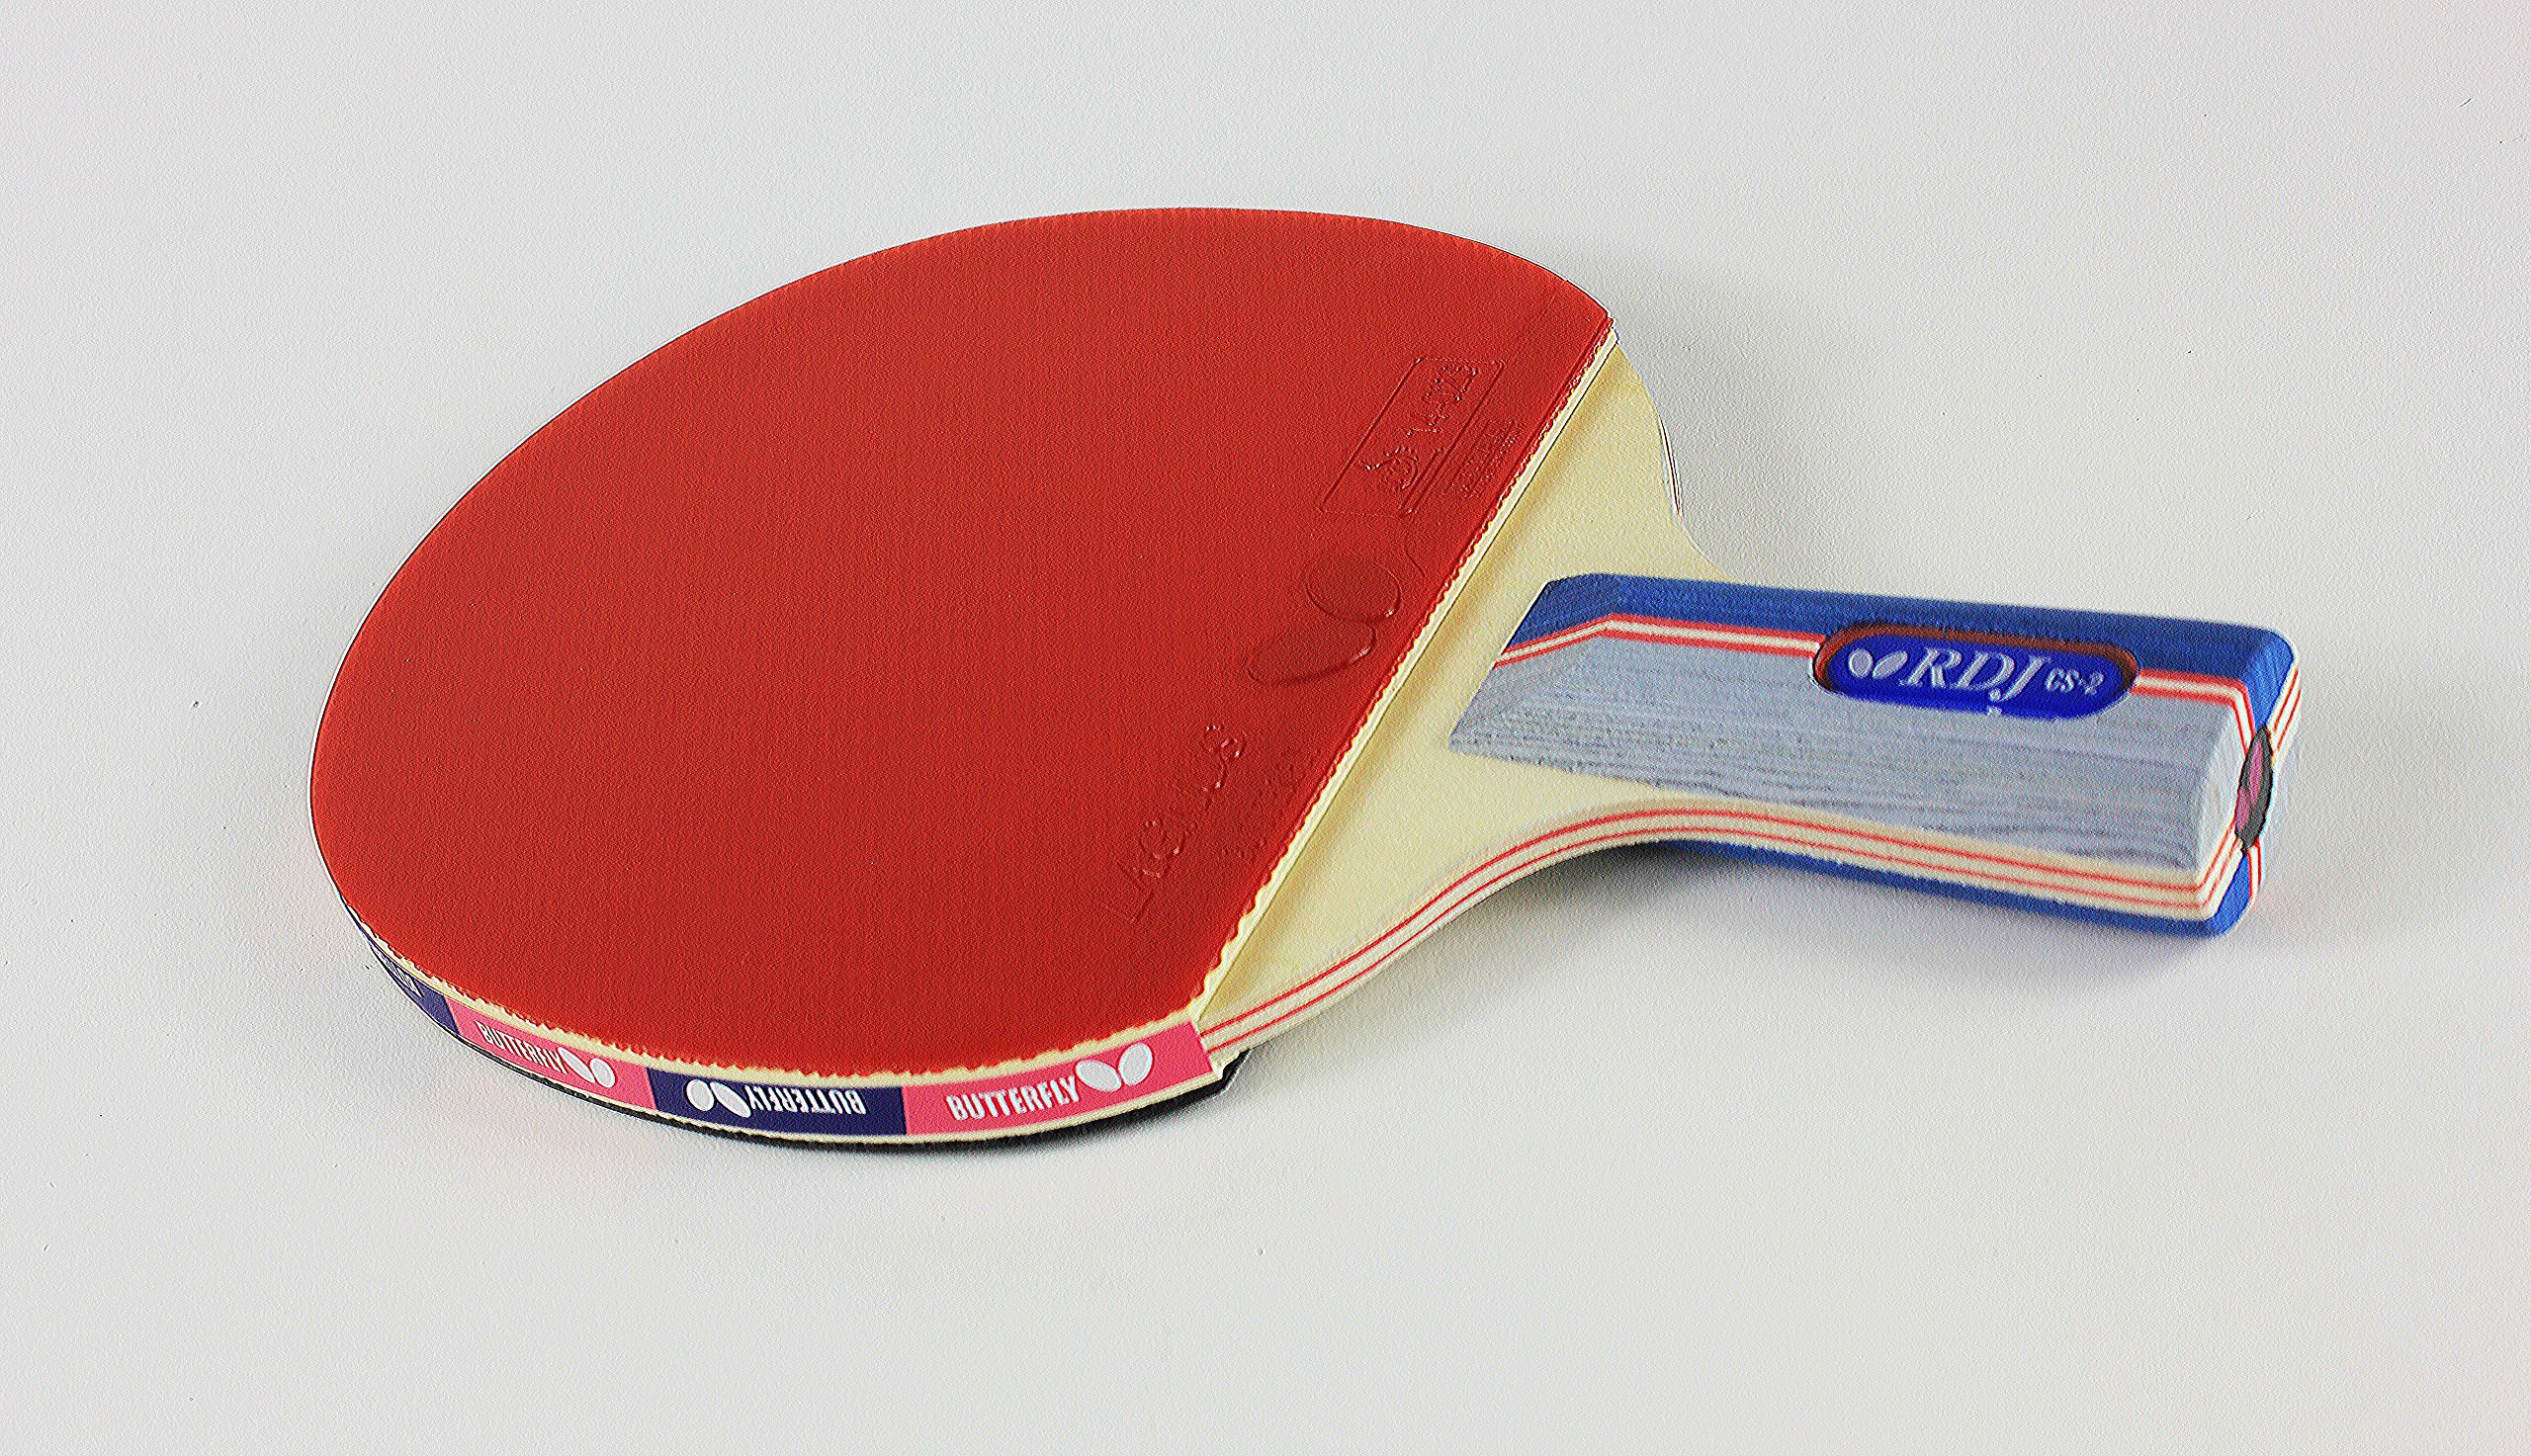 Butterfly RDJ CS2 Ping Pong Paddle – ITTF Approved Table Tennis Racket – Excellent Balance of Spin, Speed, and Control – Short Handle Table Tennis Paddle